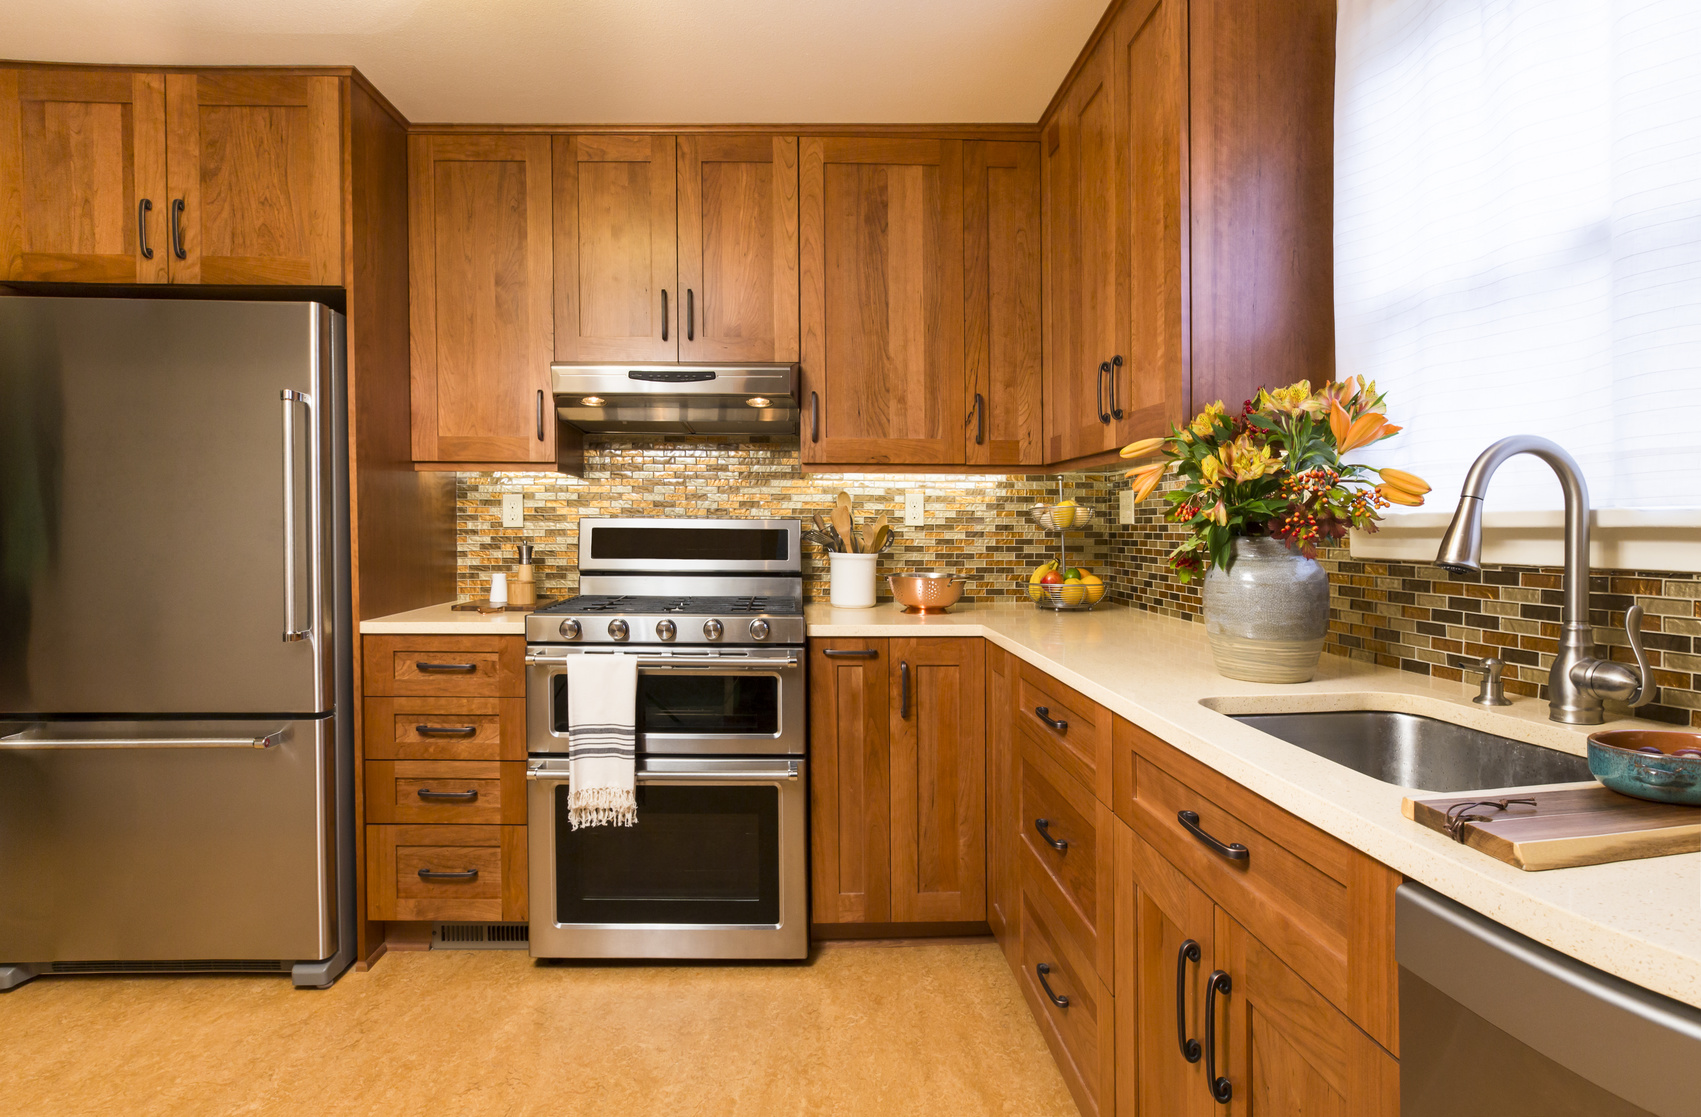 Kitchen Backsplash tiles by BELK Tile